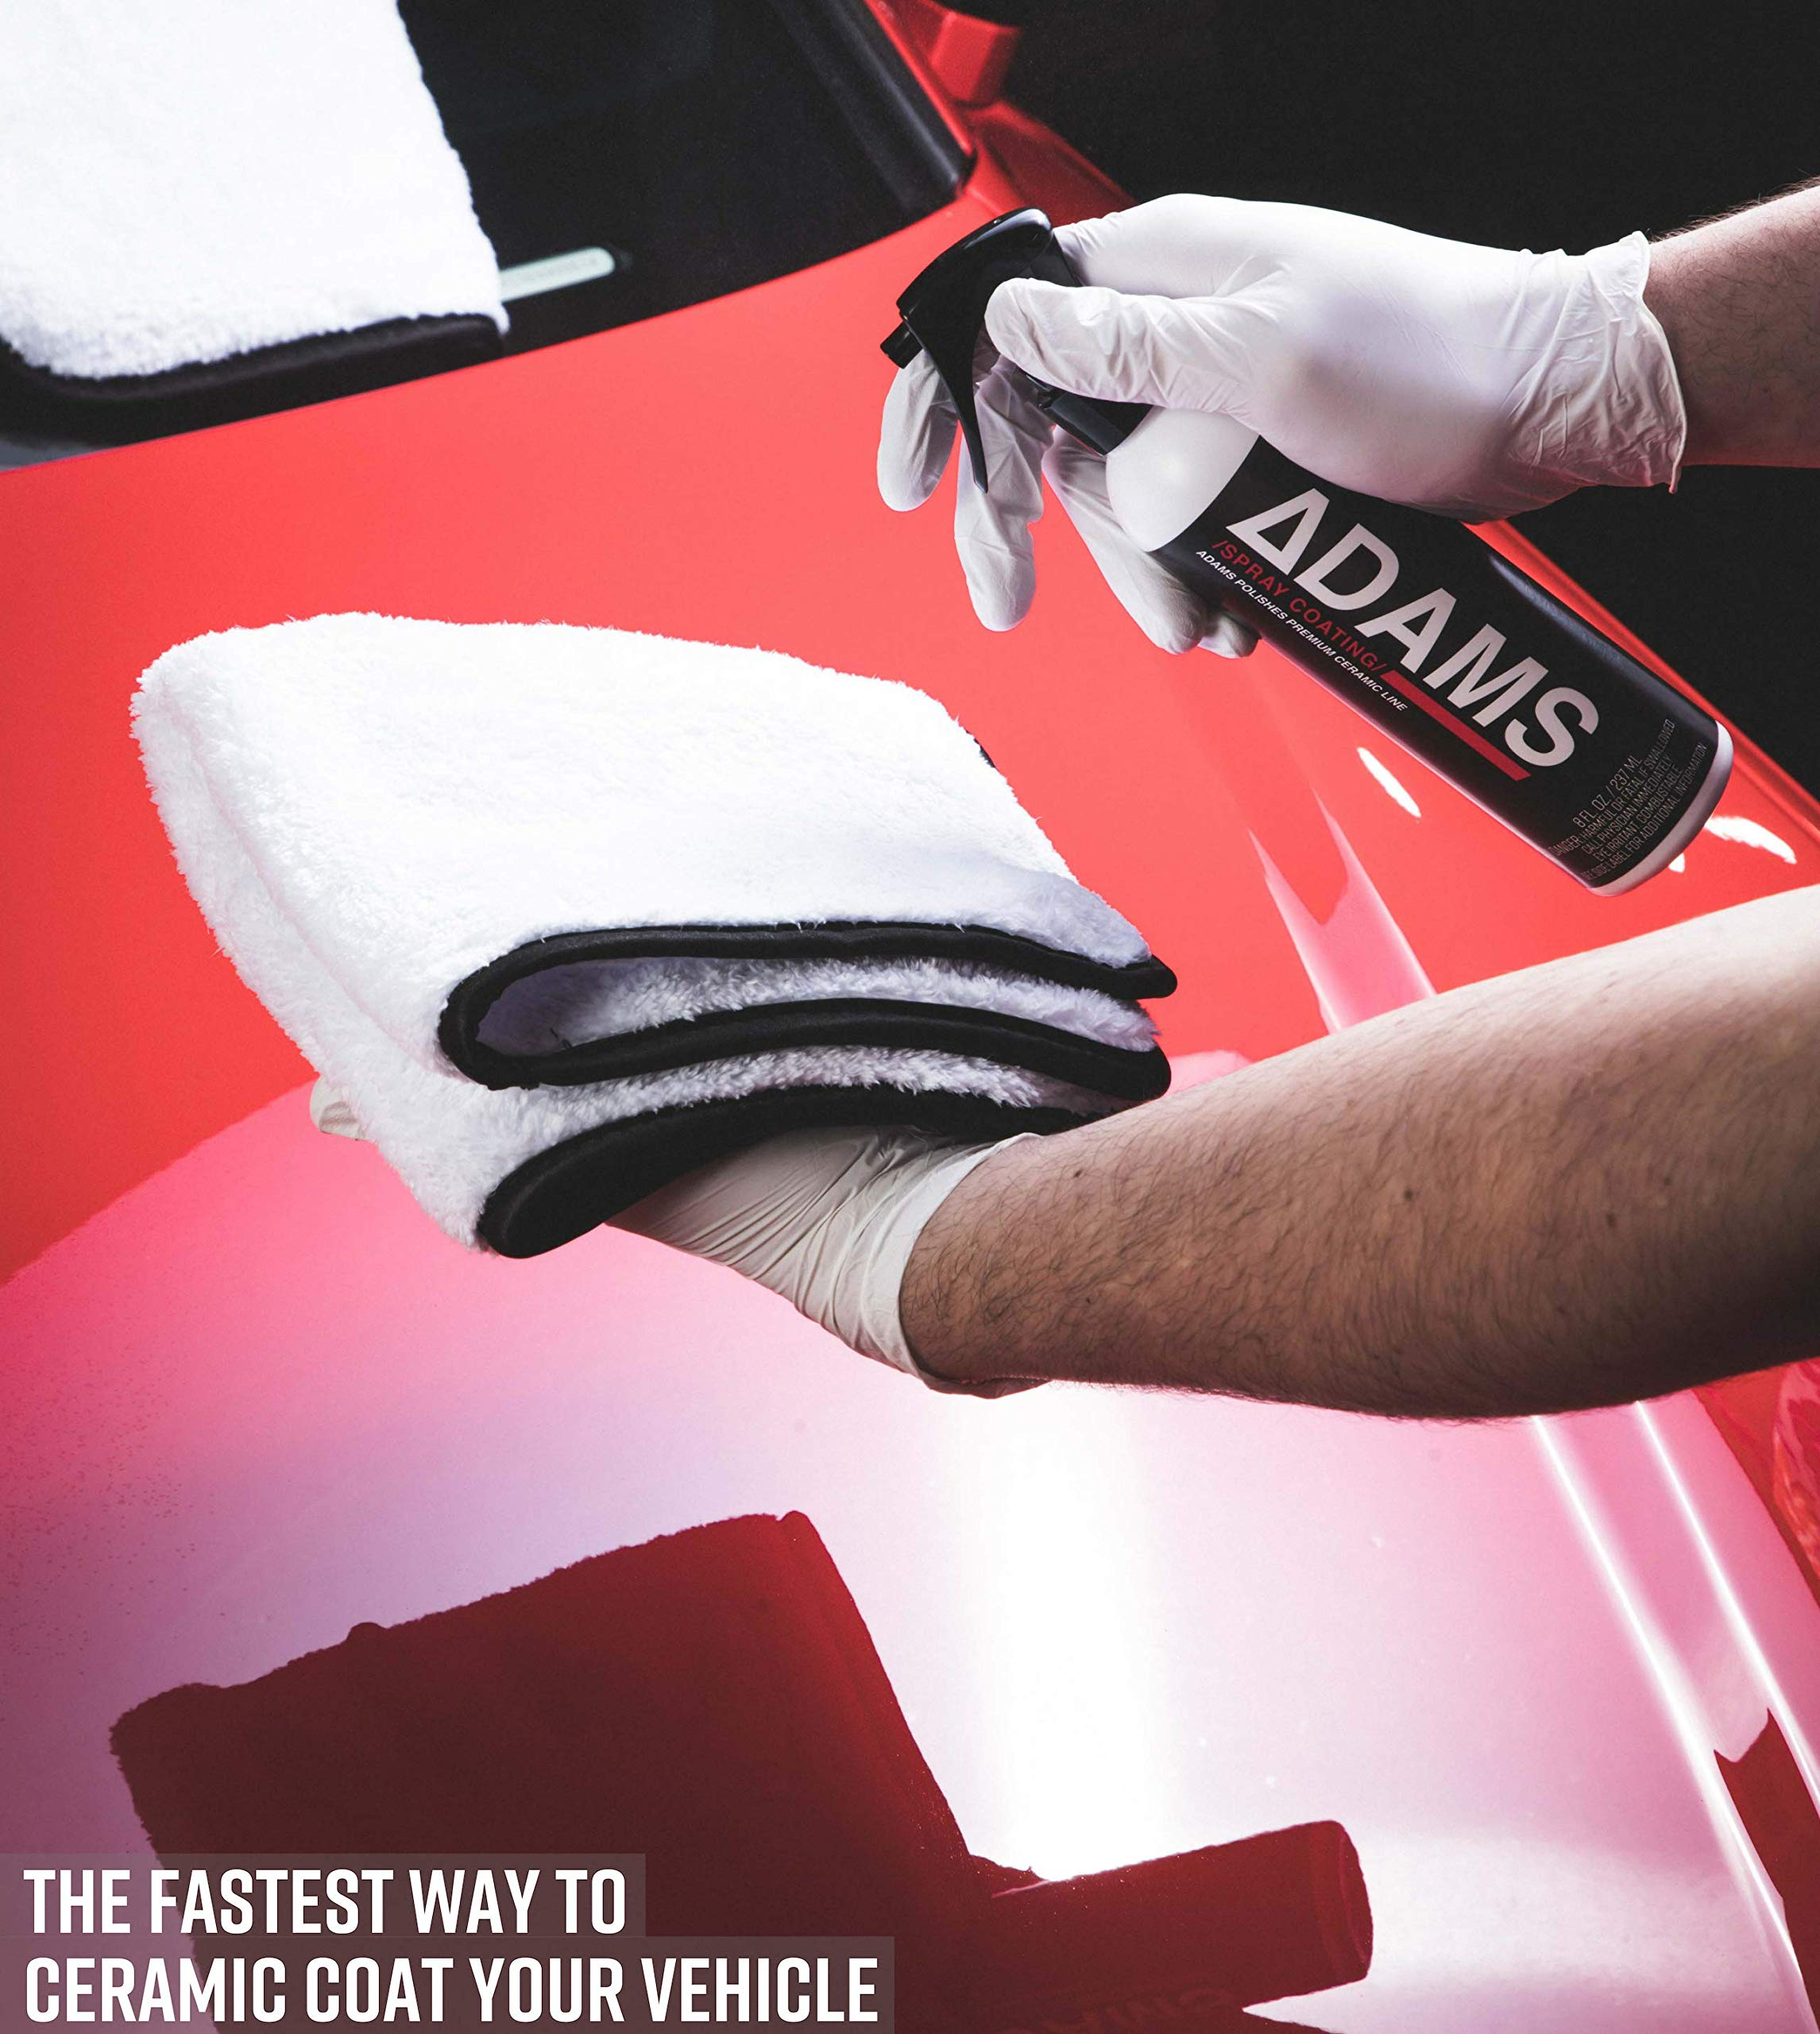 Adam's Ceramic Spray Coating 8 oz Complete Kit - A True Nano Ceramic Protection for Car, Boat & Motorcycle Paint - Top Coat Polish Sealant After Clay Bar, Polishing & Detail Car Wash (Complete Kit) by Adam's Polishes (Image #3)